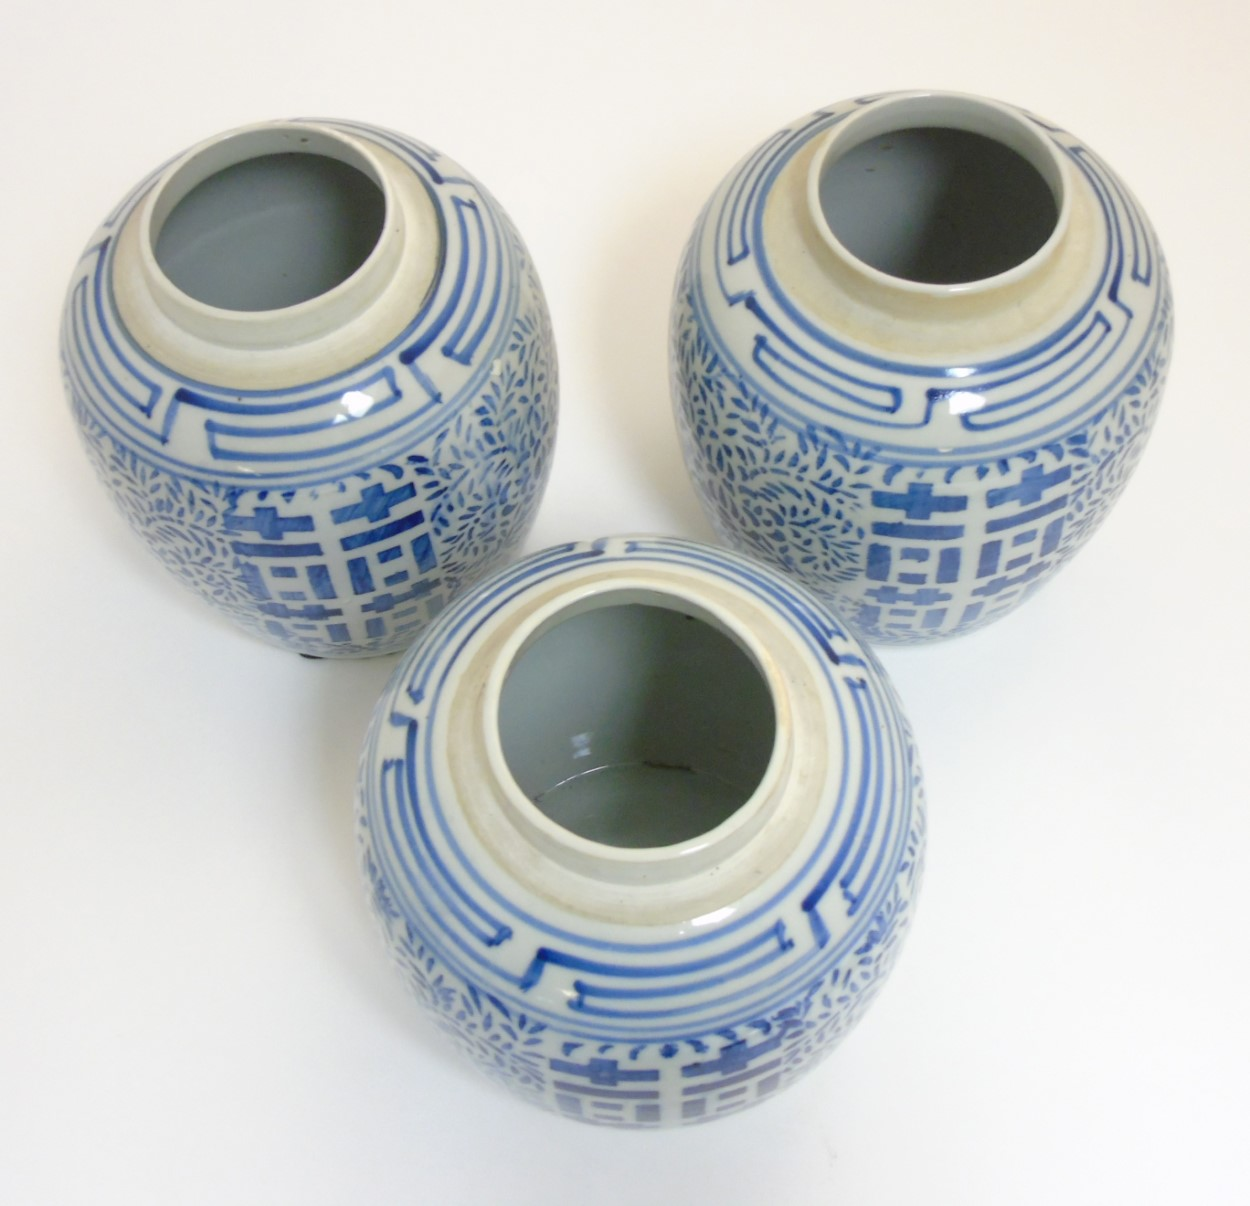 Lot 13 - 3 Oriental blue and white 'Double Happiness' lidded ginger jars with chinoiserie decoration,